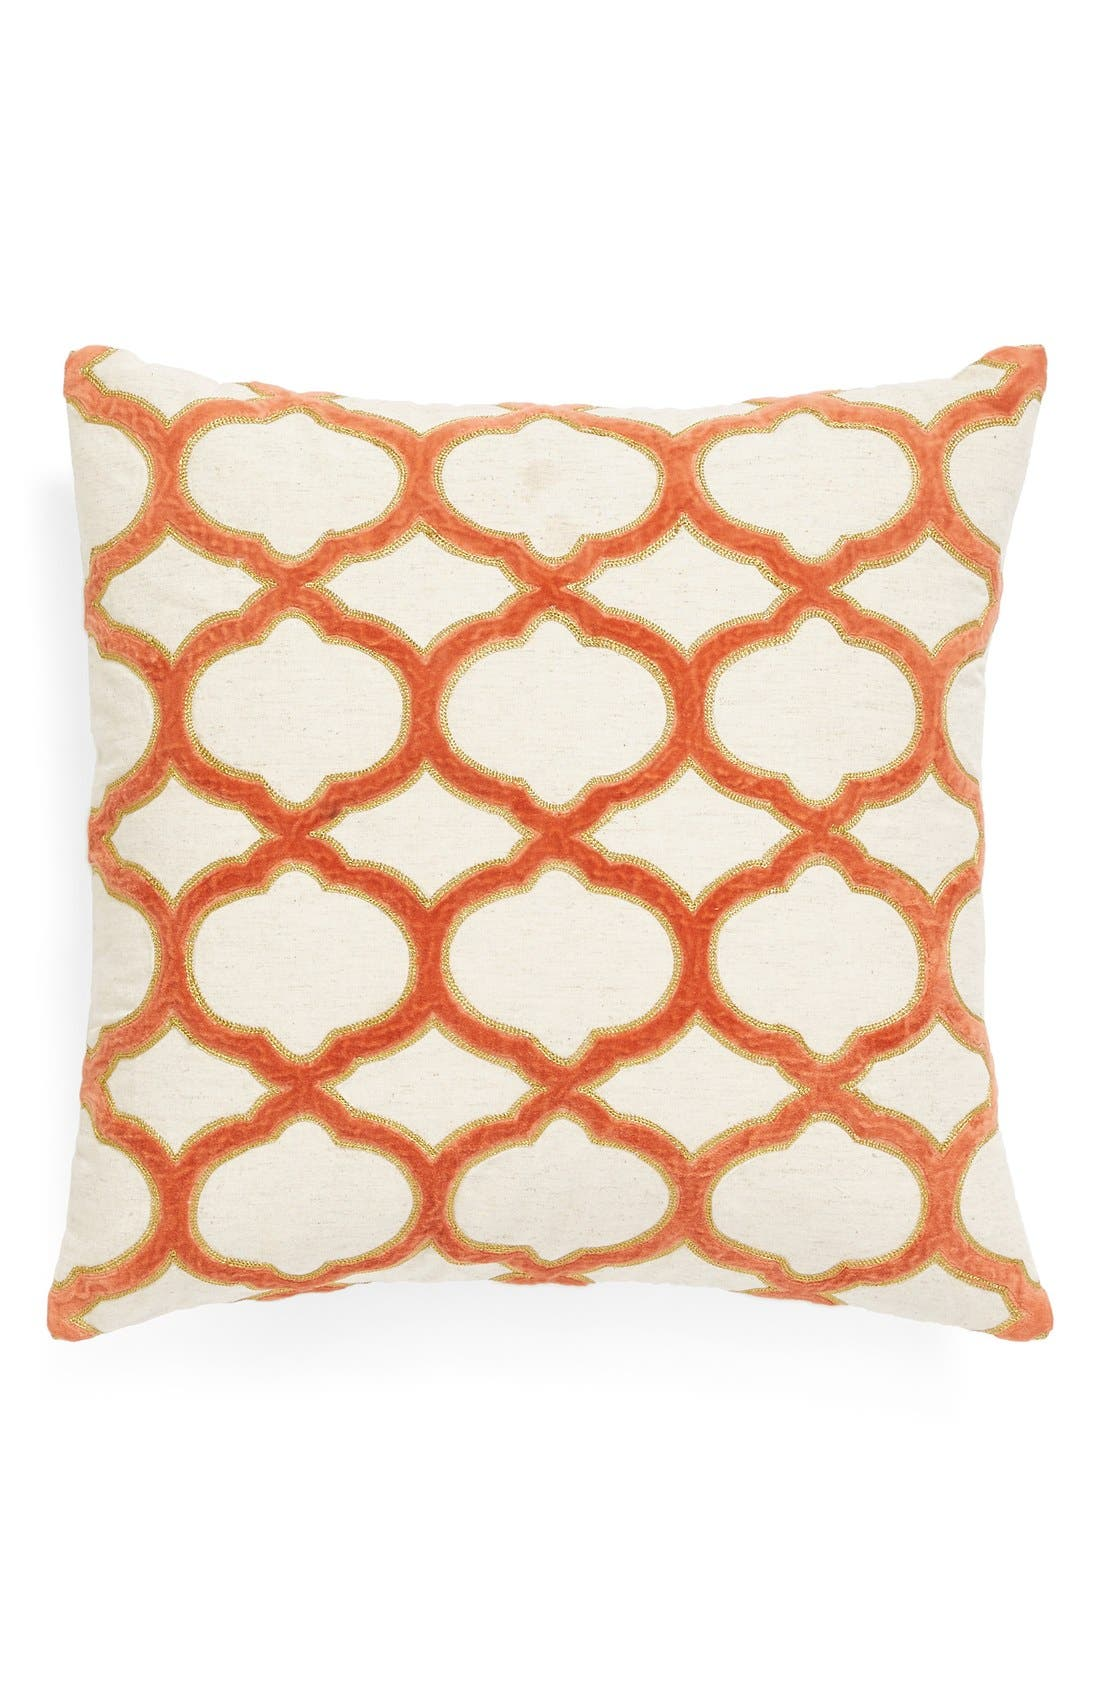 Alternate Image 1 Selected - Nordstrom at Home 'Velvet Trellis' Pillow